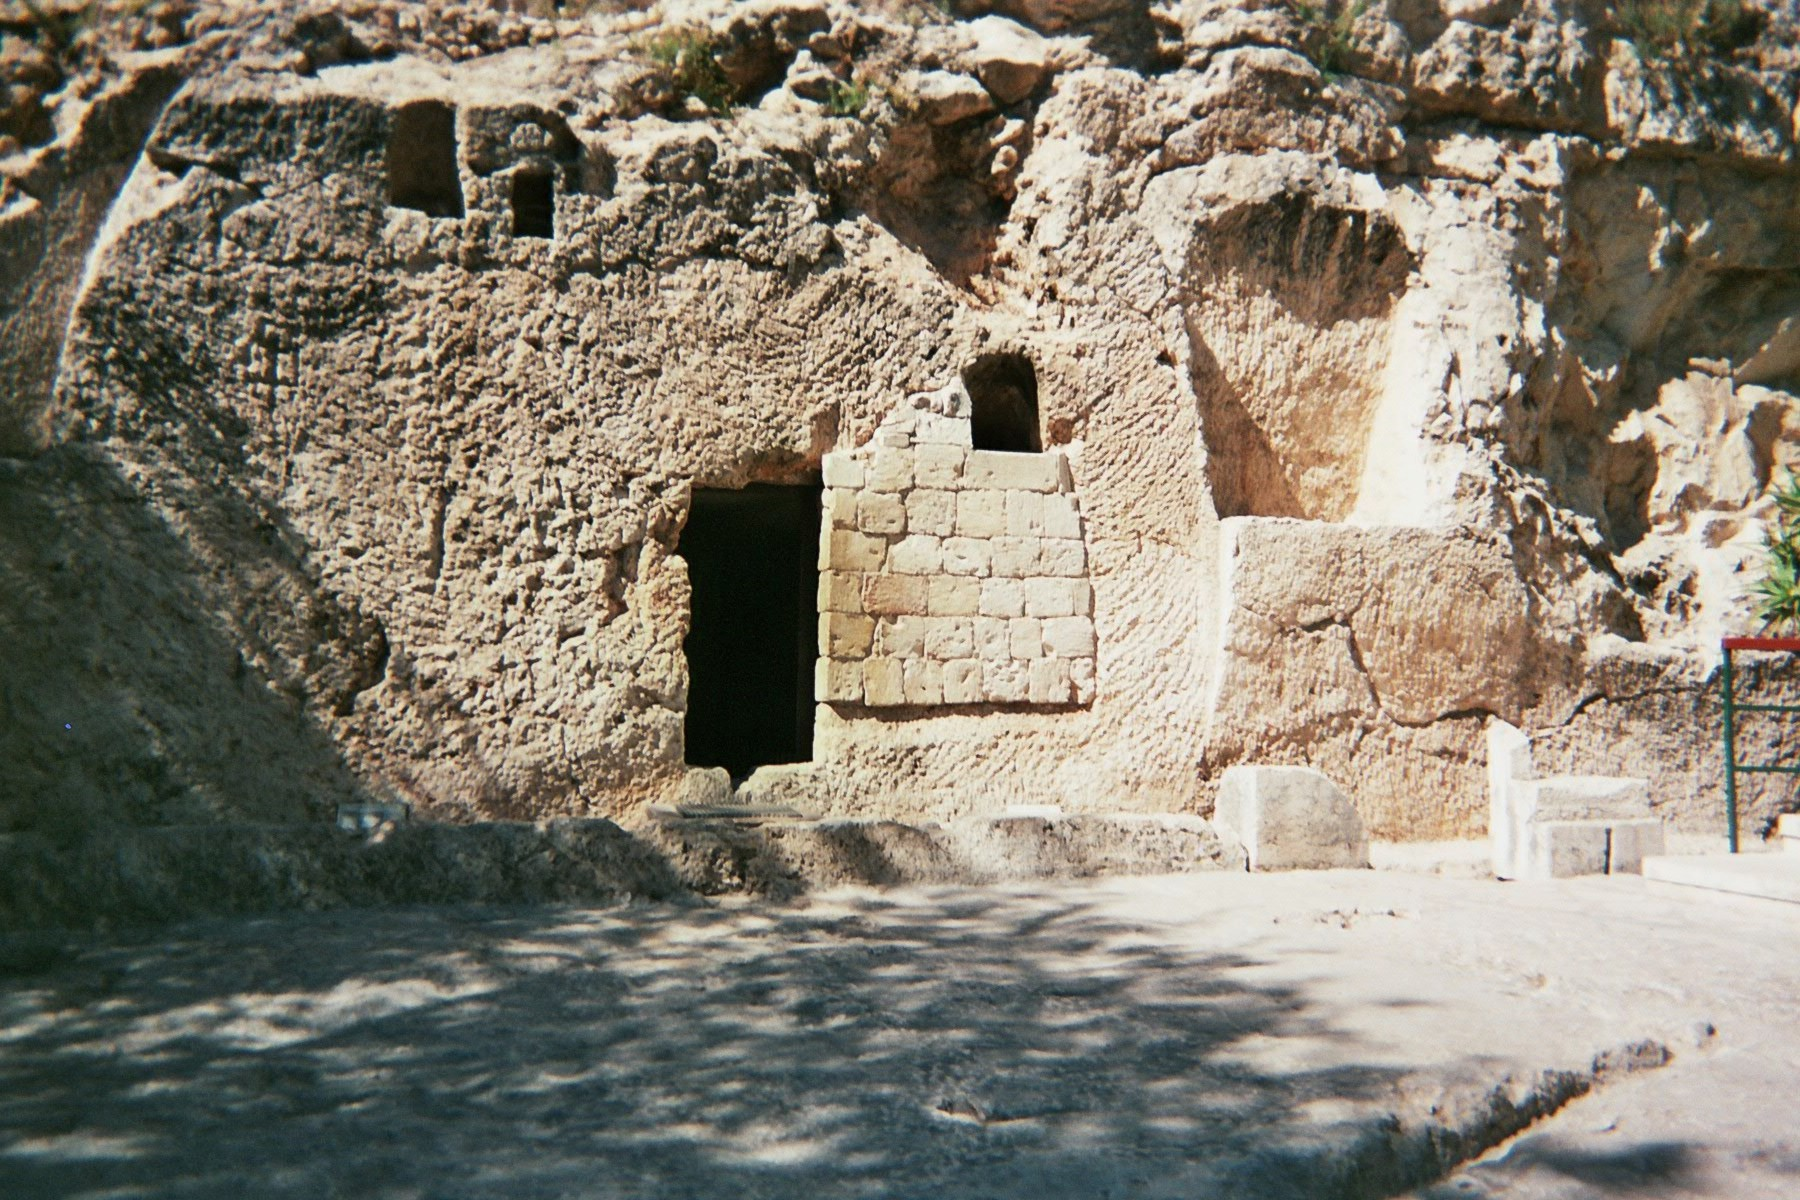 Tomb that might resemble the one donated by Joseph of Arimathea.